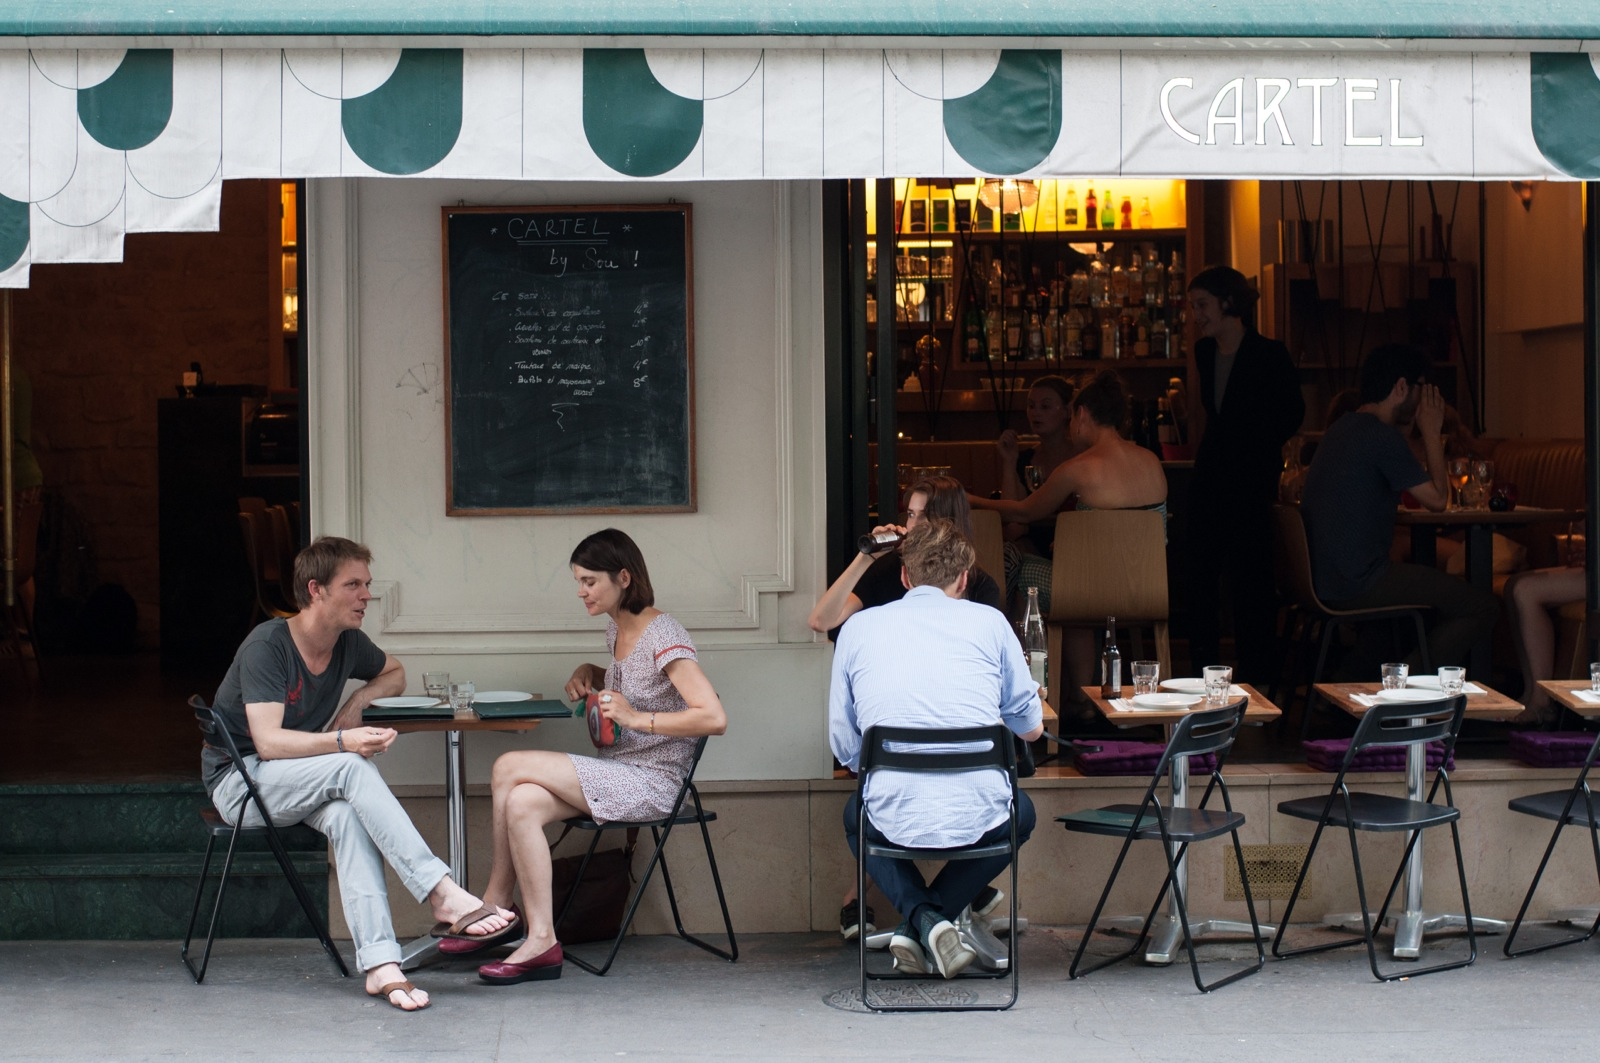 Cartel: Japanese Tapas Along Paris' Canal Saint-Martin